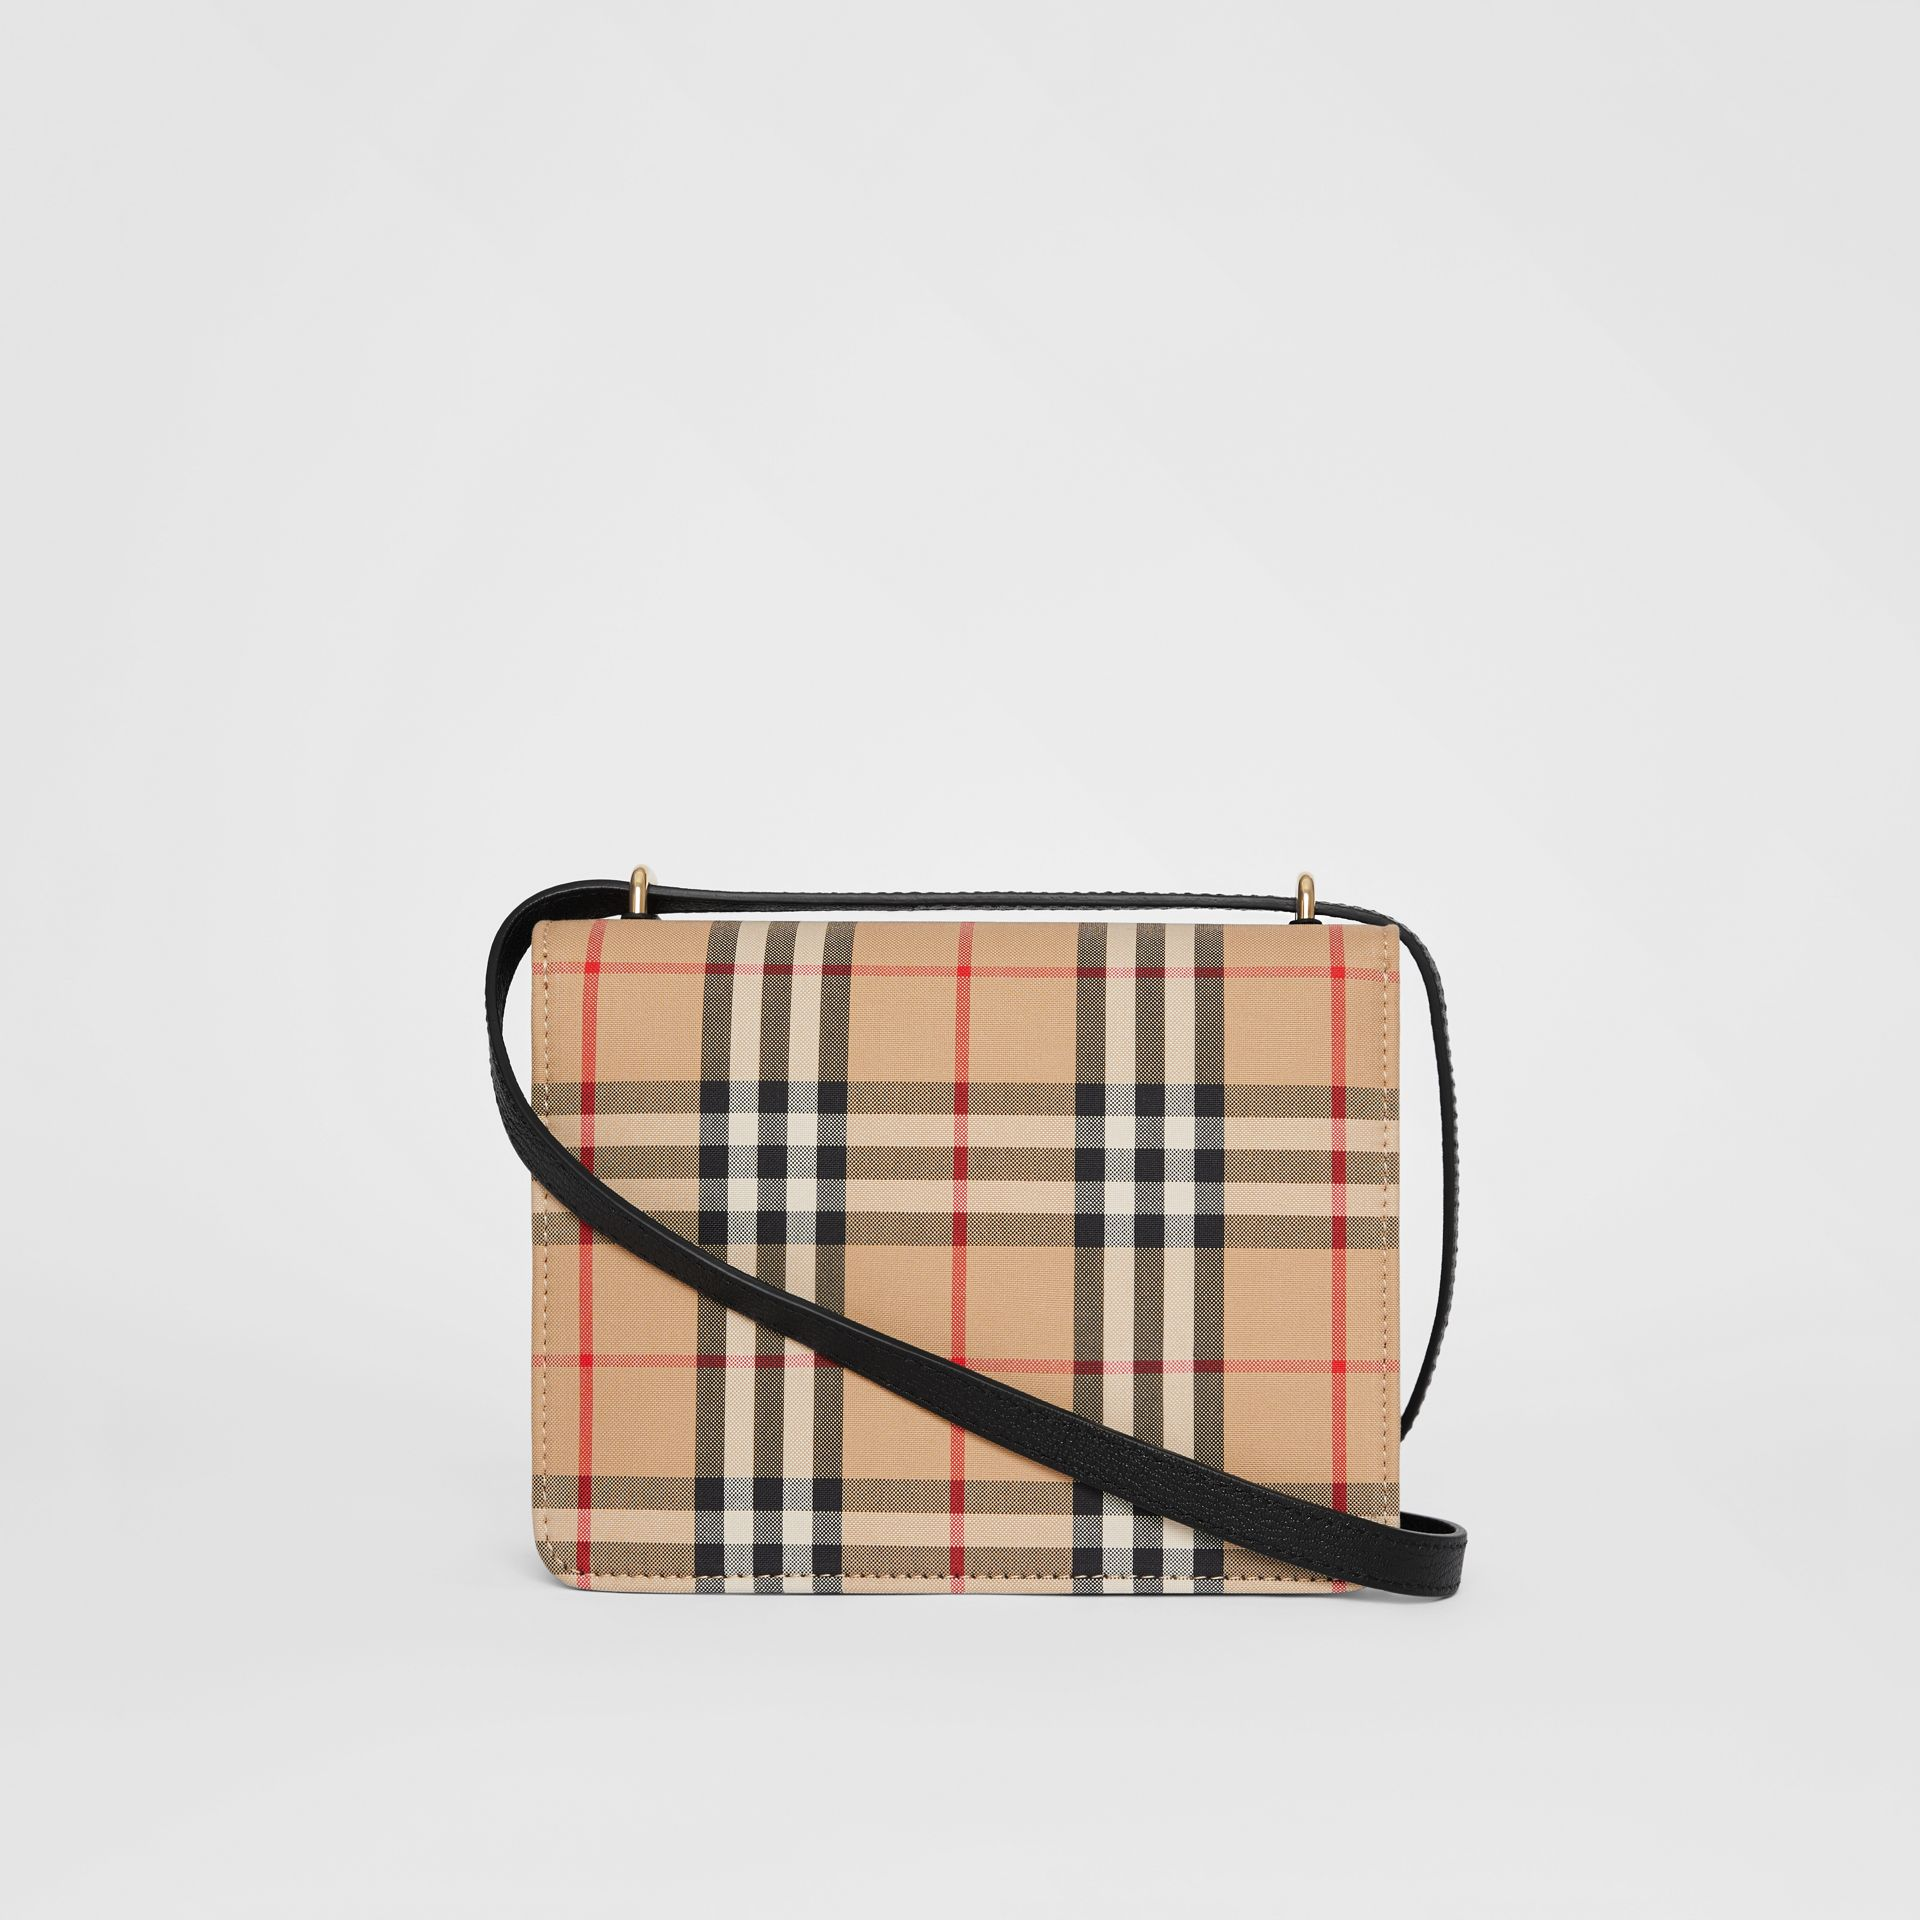 The Small Vintage Check and Leather D-ring Bag in Black - Women | Burberry United States - gallery image 10